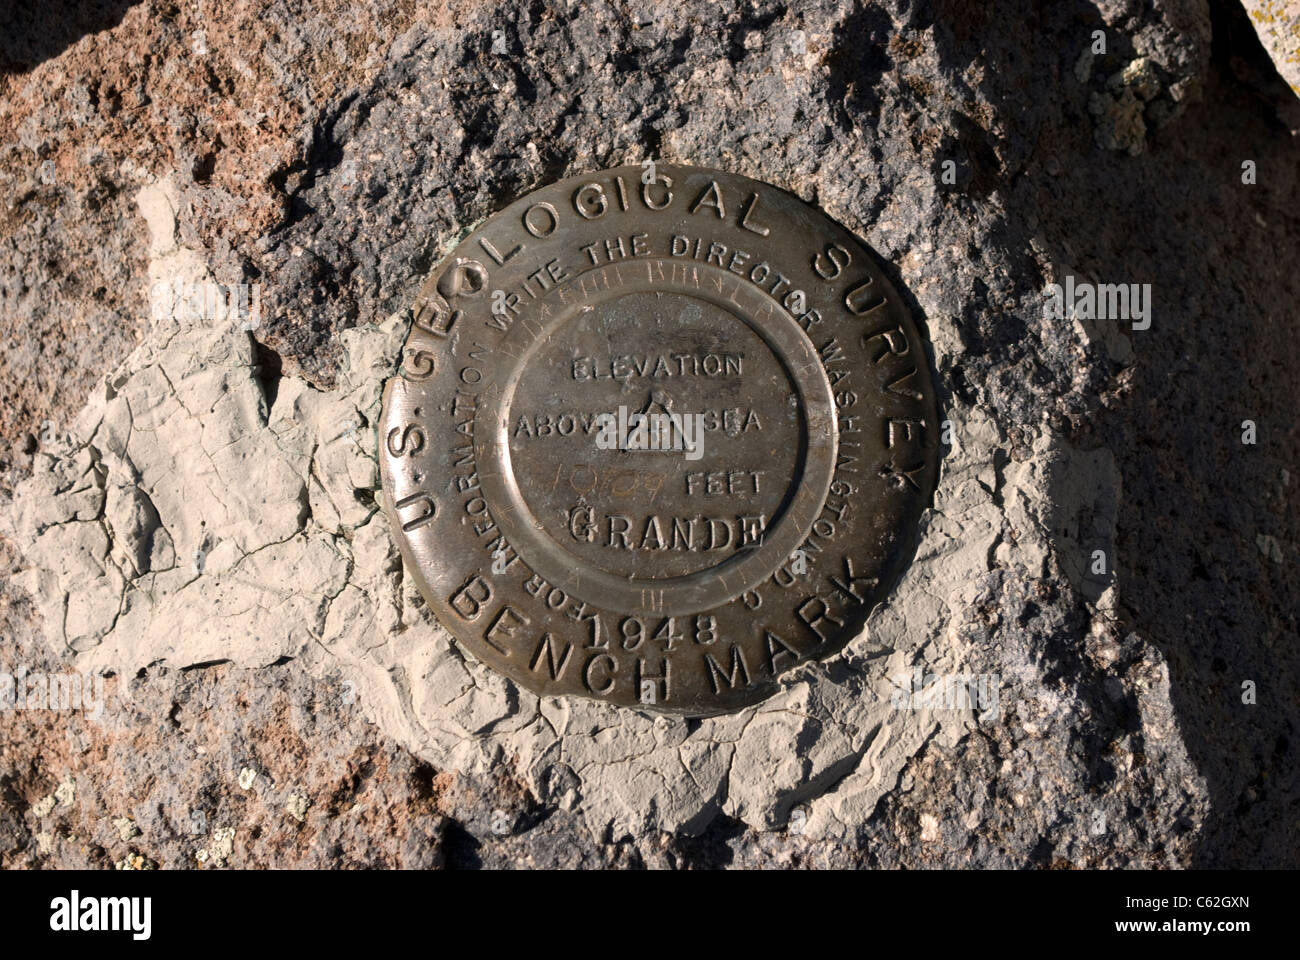 A Bench Mark marker found at the peak of Cerro Grande, identifying the official summit, elevation, and date of survey. - Stock Image